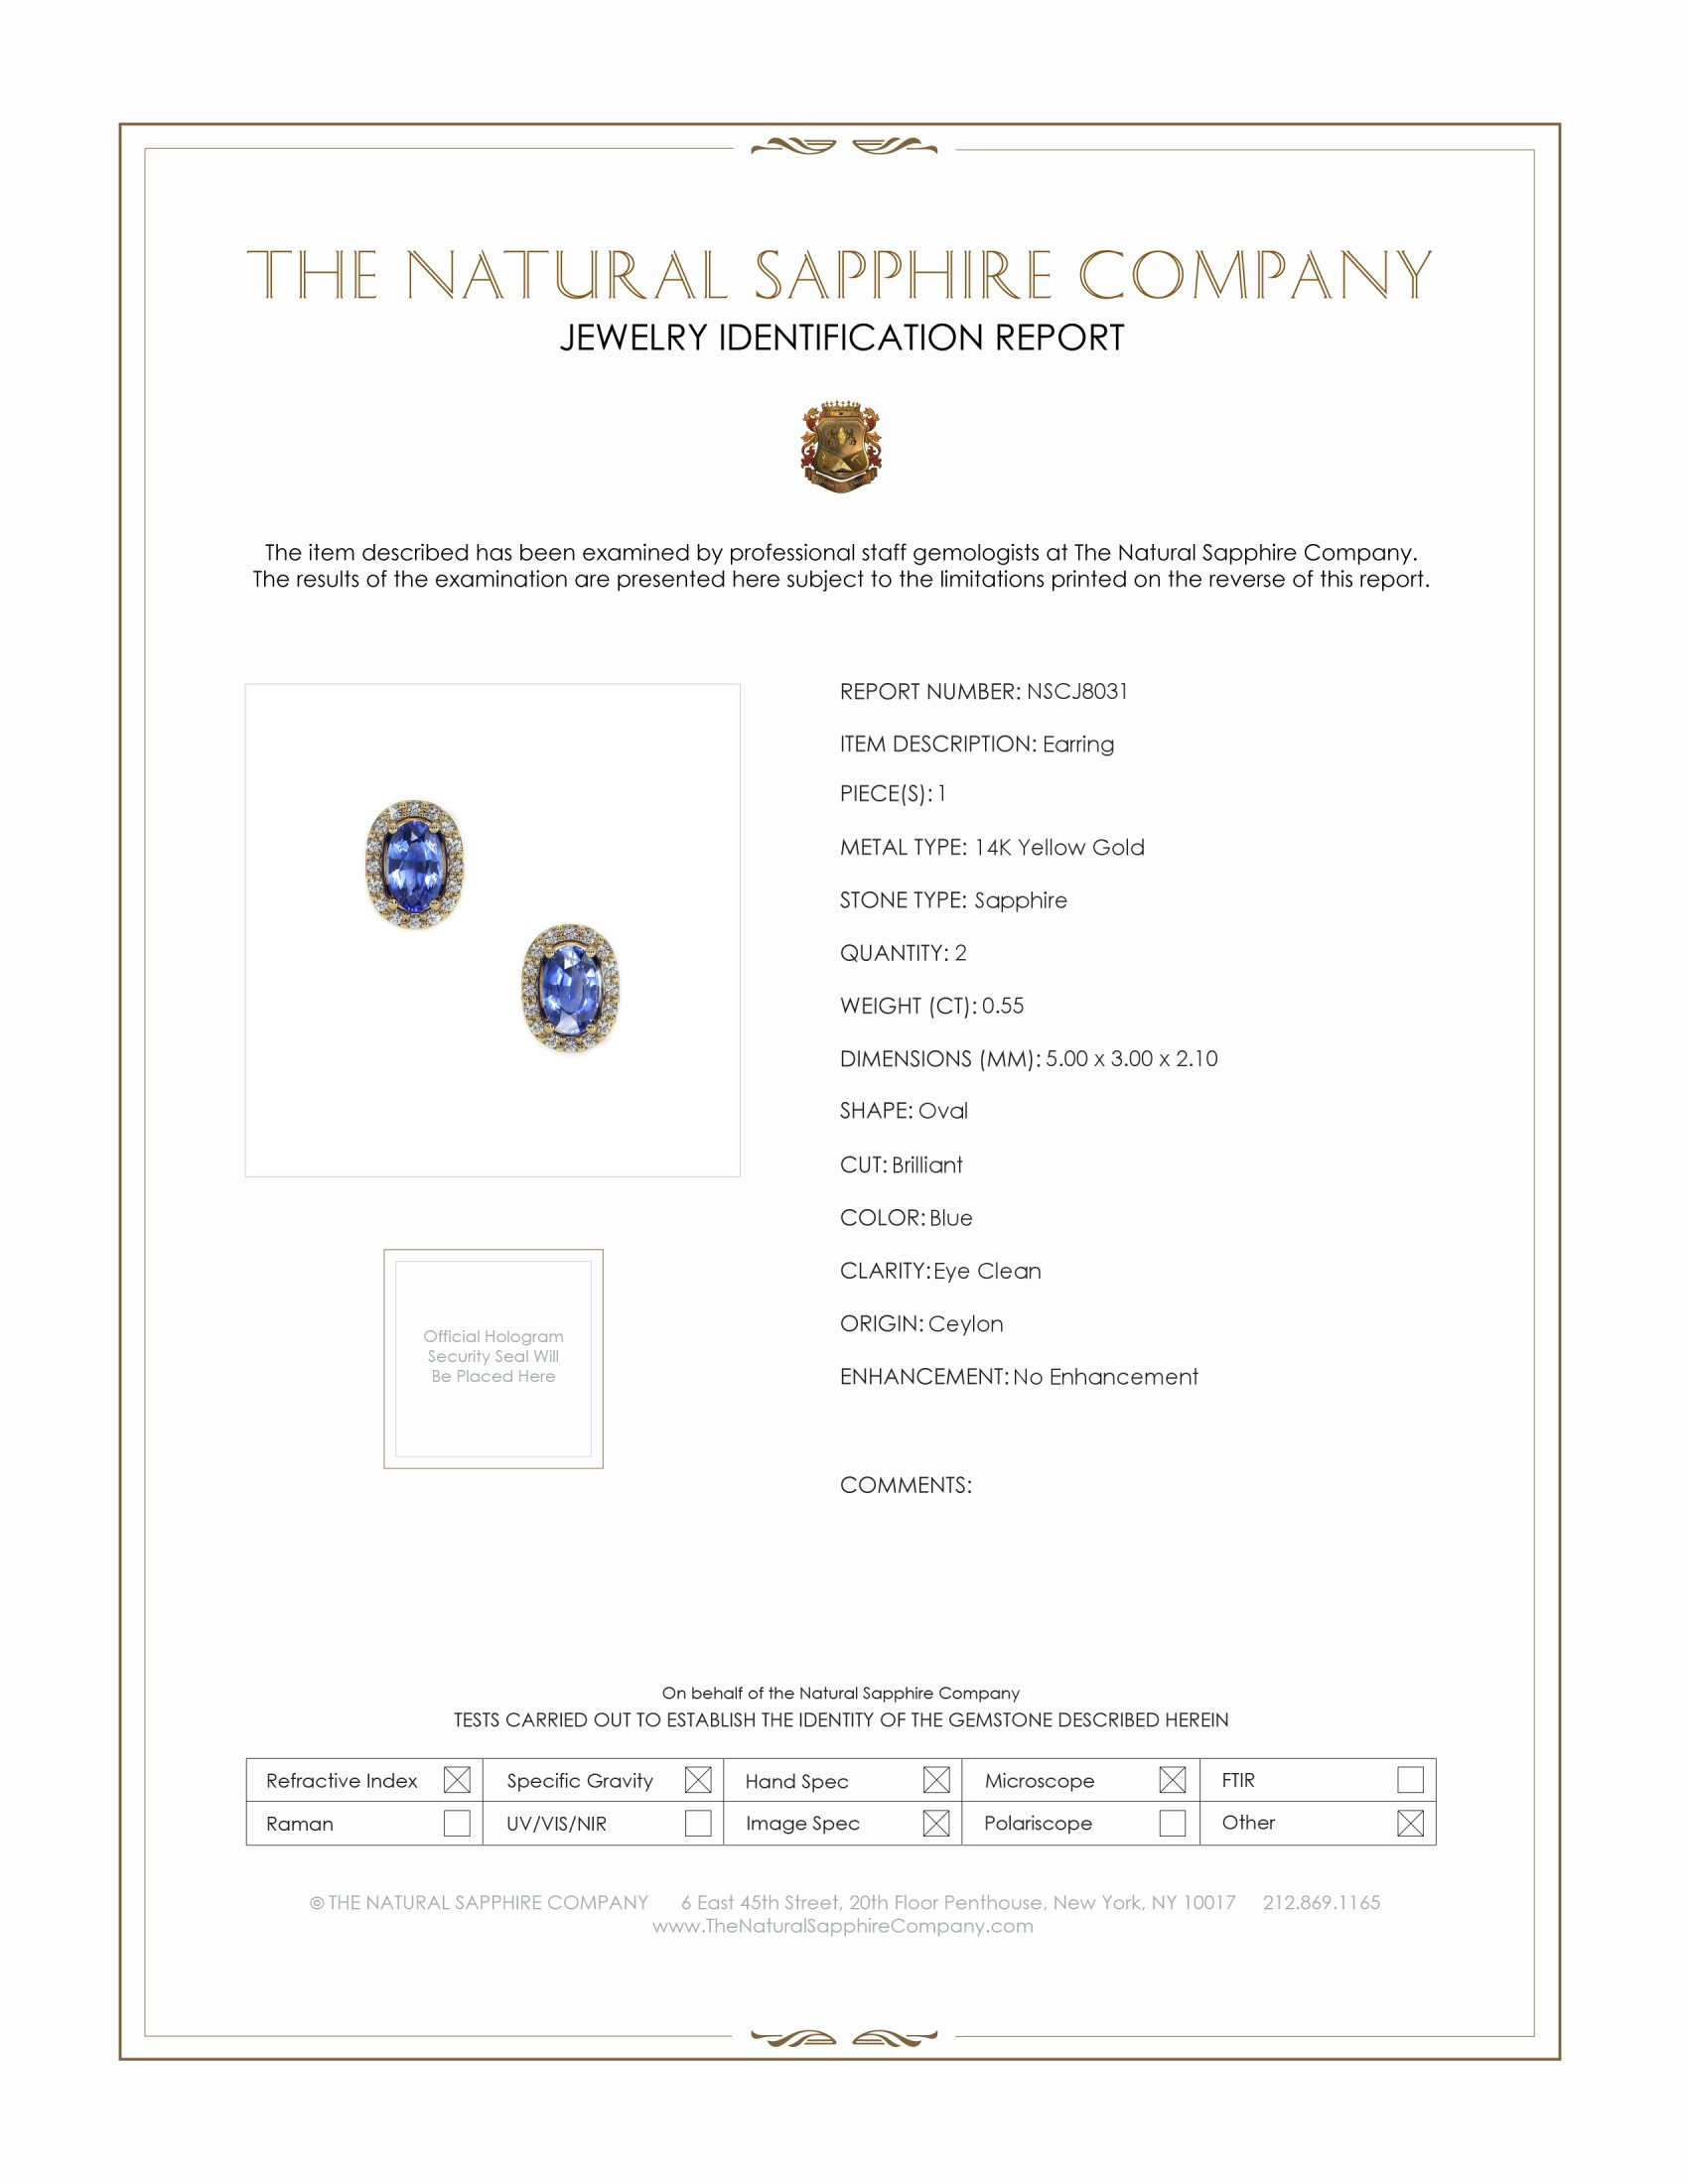 0.55ct Blue Sapphire Earring Certification